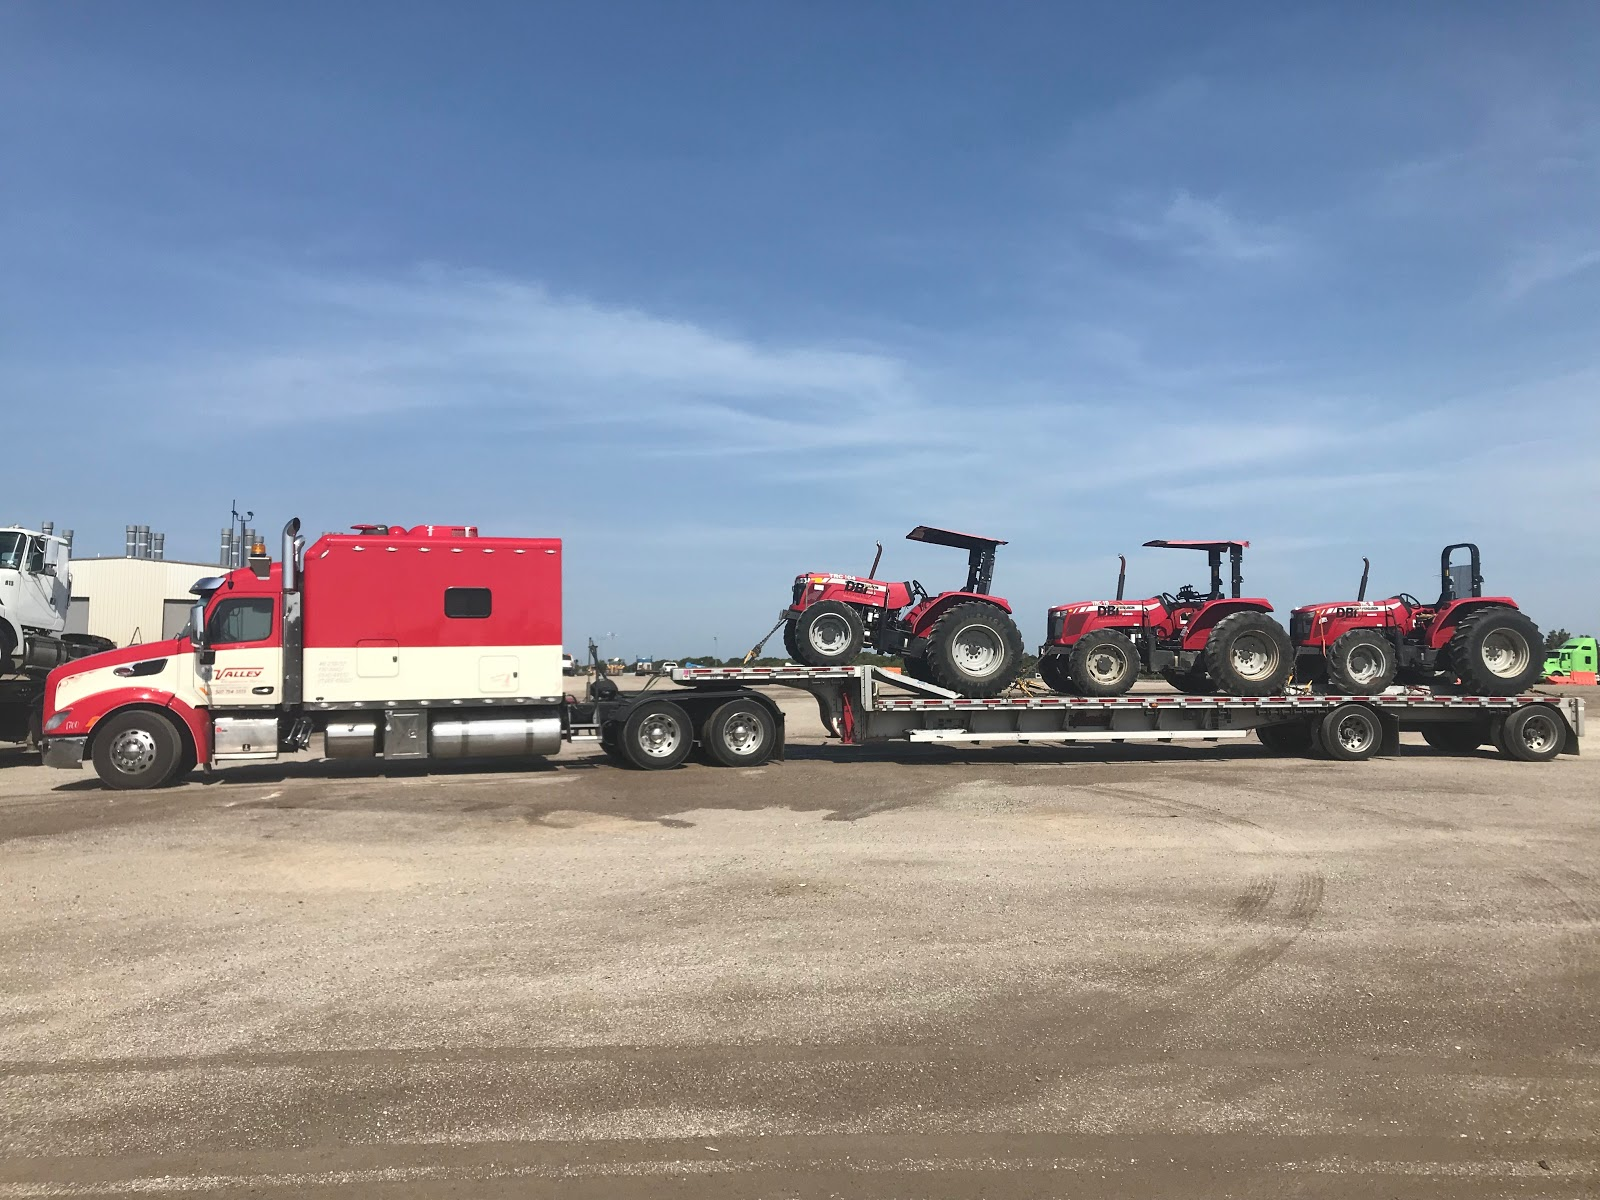 3 massey ferguson 2660 tractors being transported